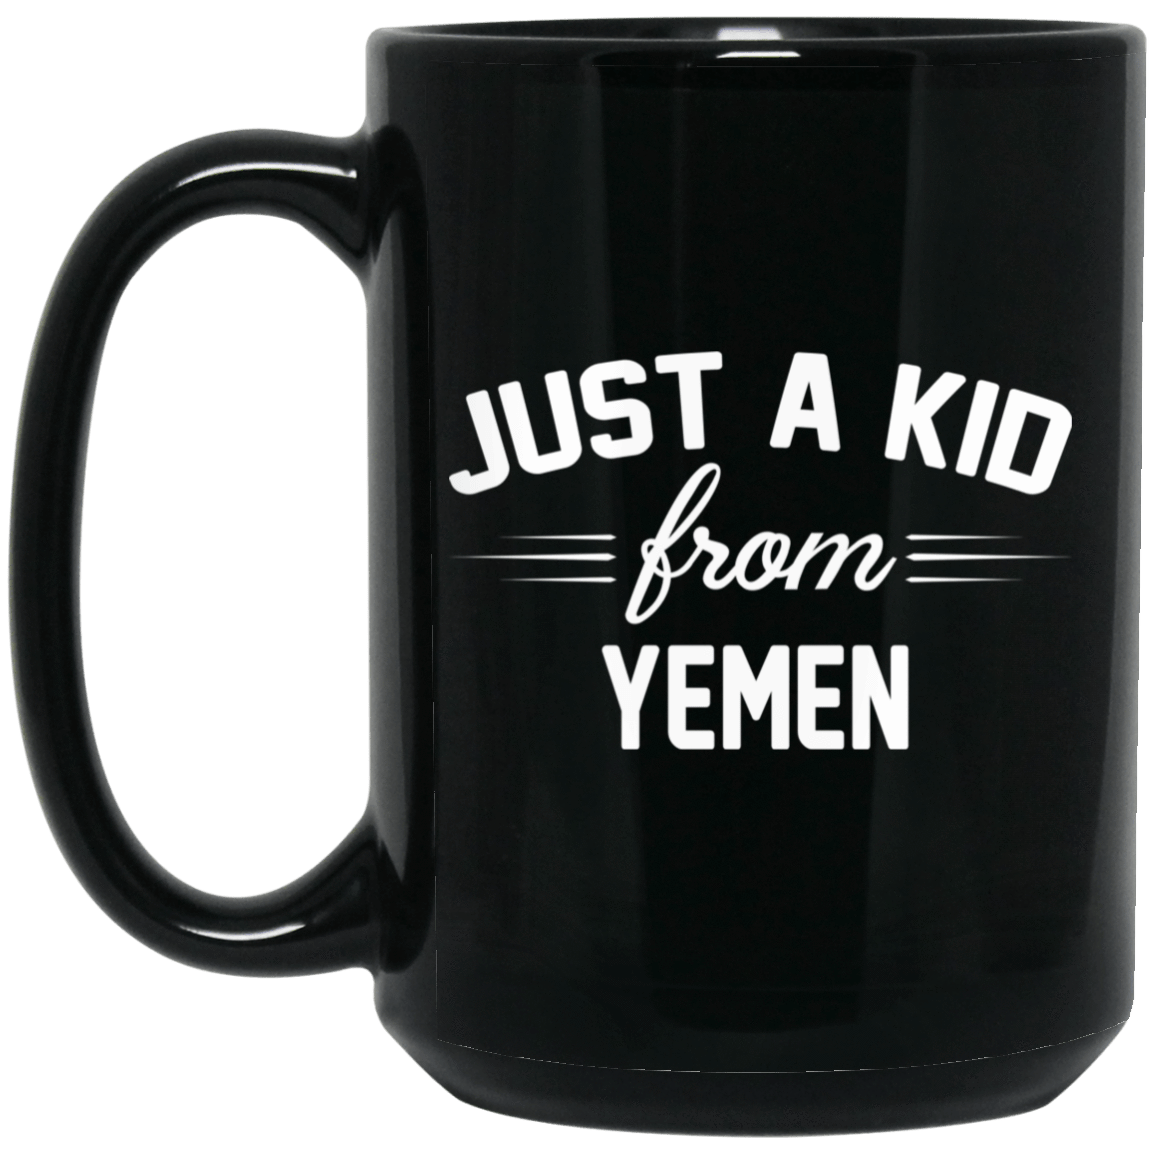 Just A Kid Store | Yemen Mug 1066-10182-72111092-49311 - Tee Ript